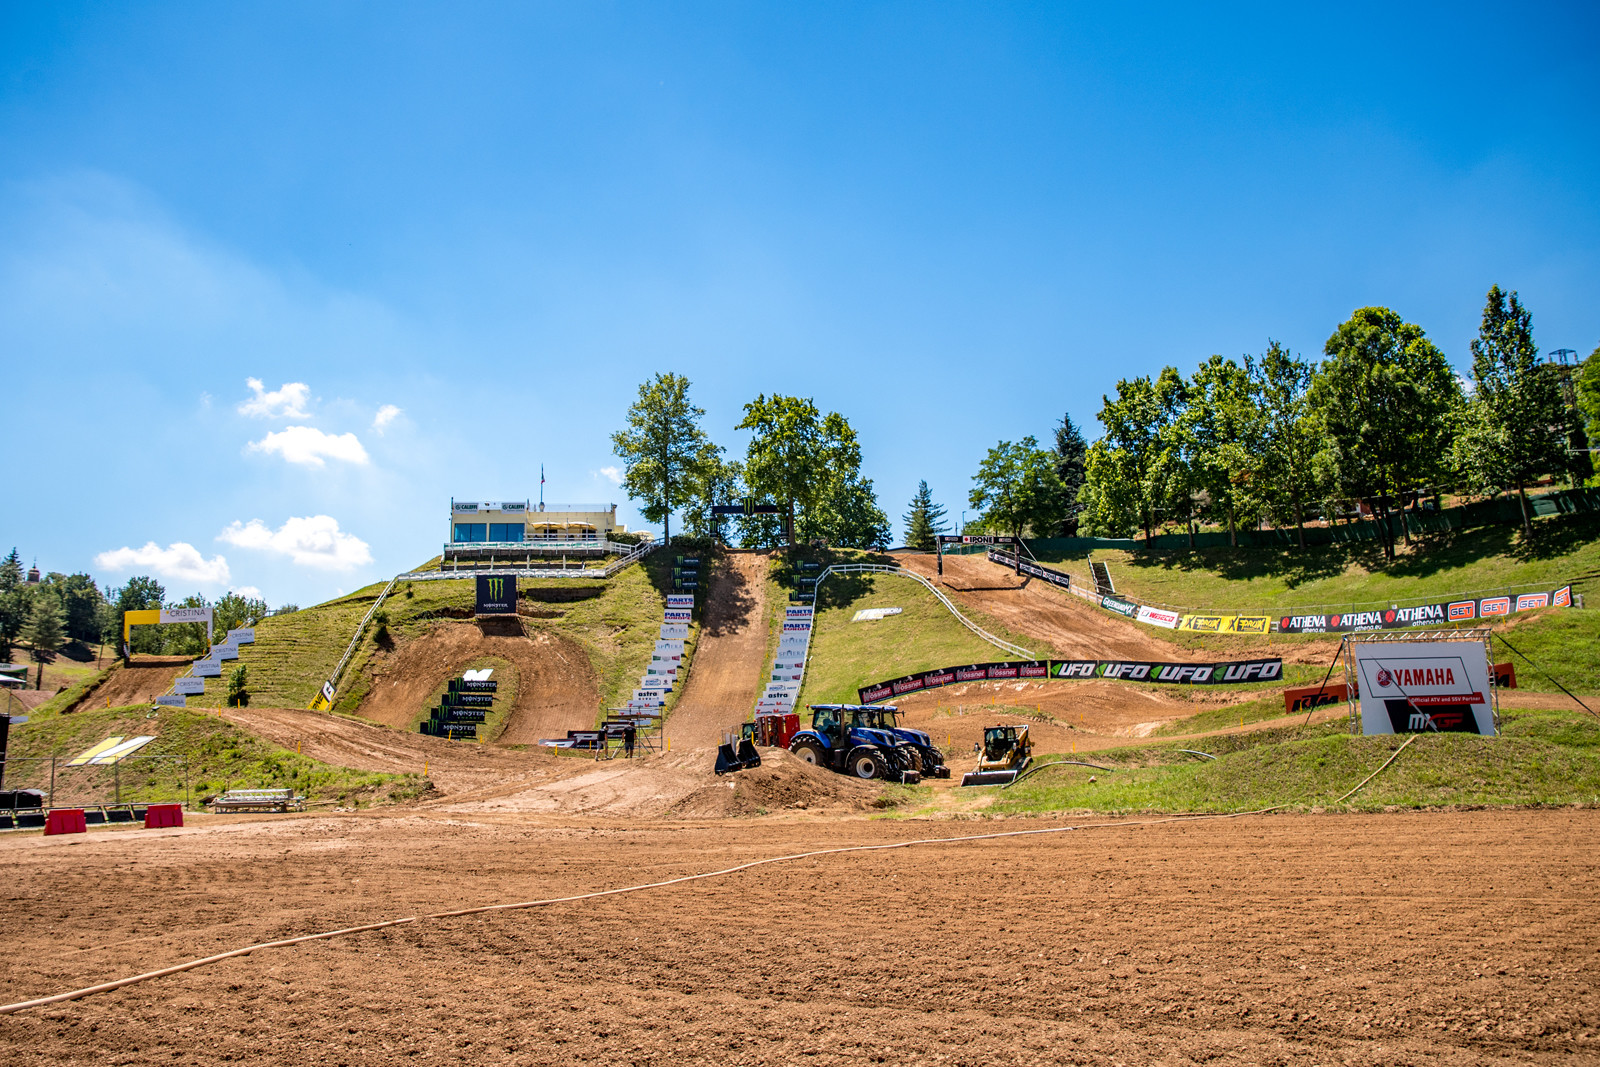 The Maggiora circuit is beautiful, but this photo was a few days before the race which saw some late moto rain.